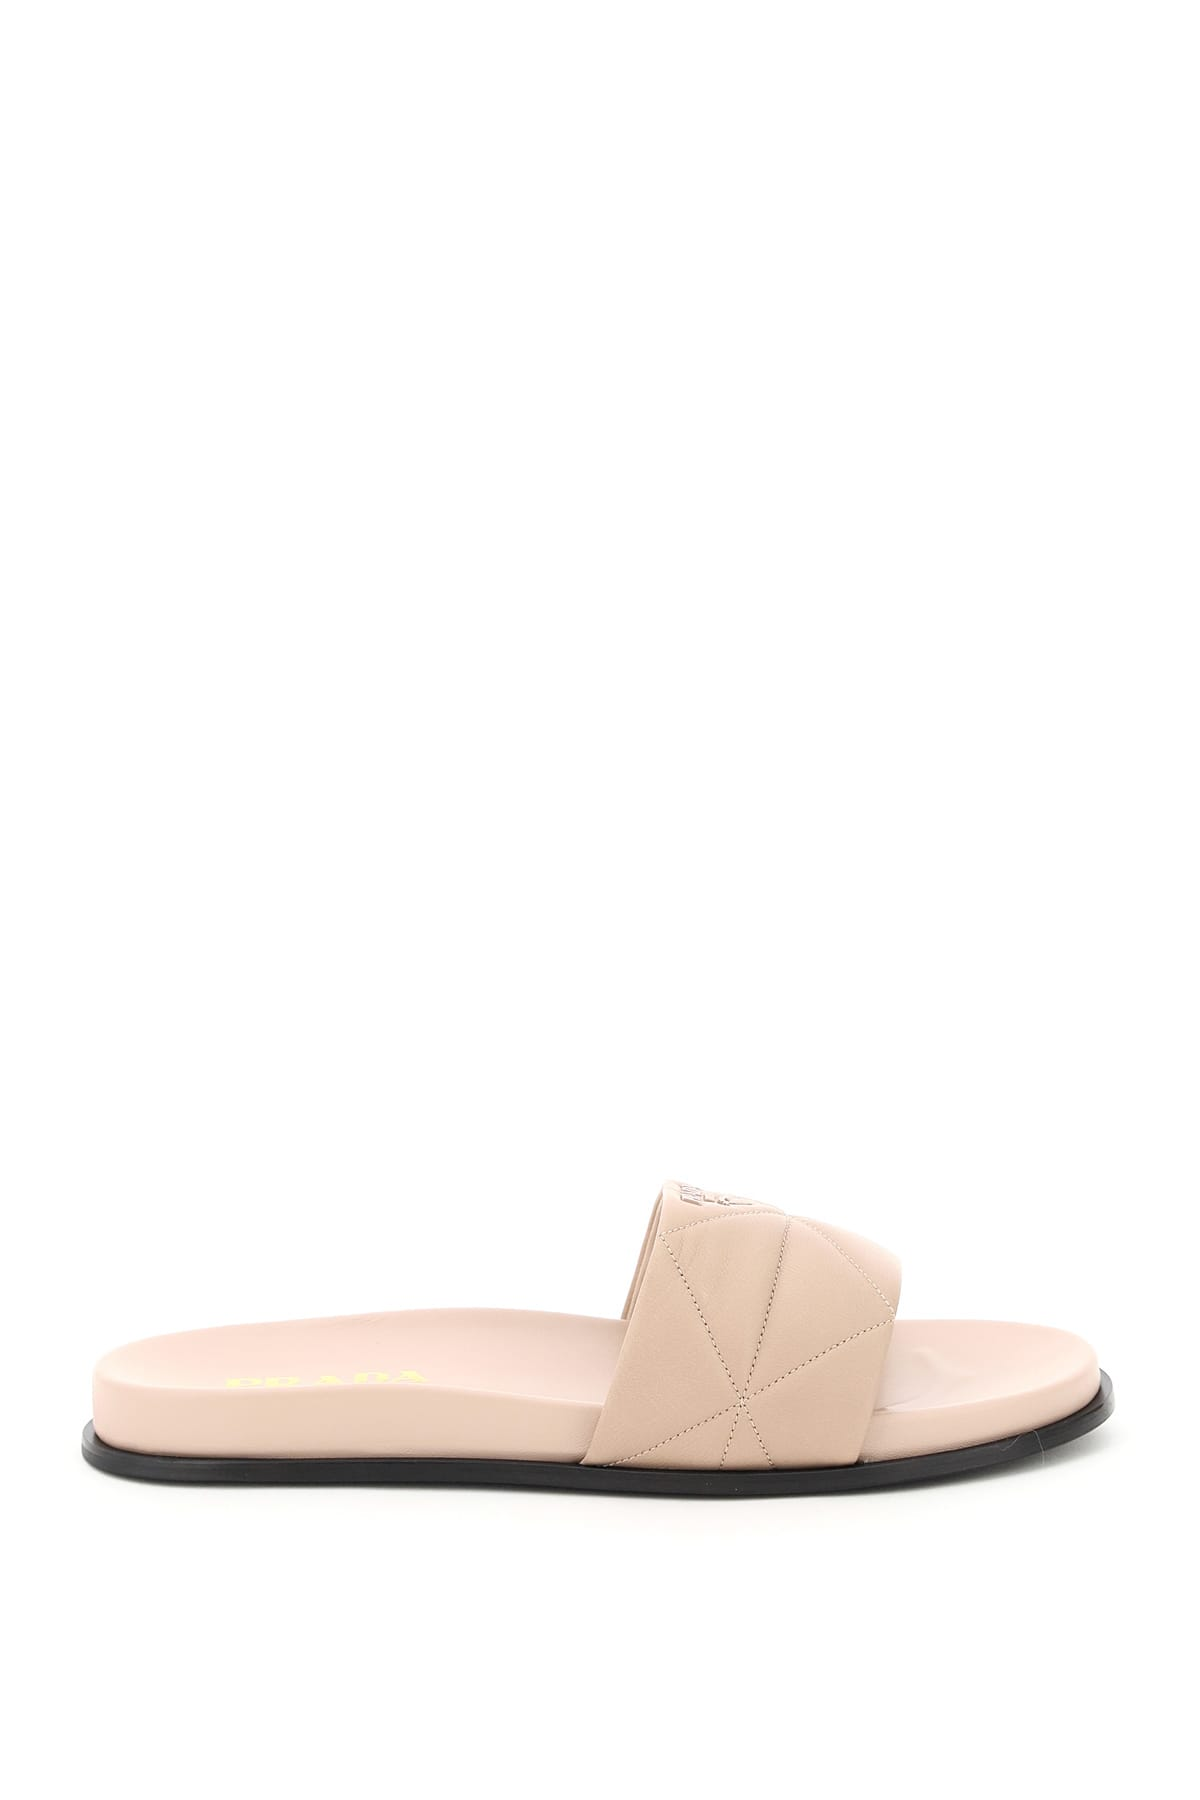 Prada MULES IN QUILTED NAPPA